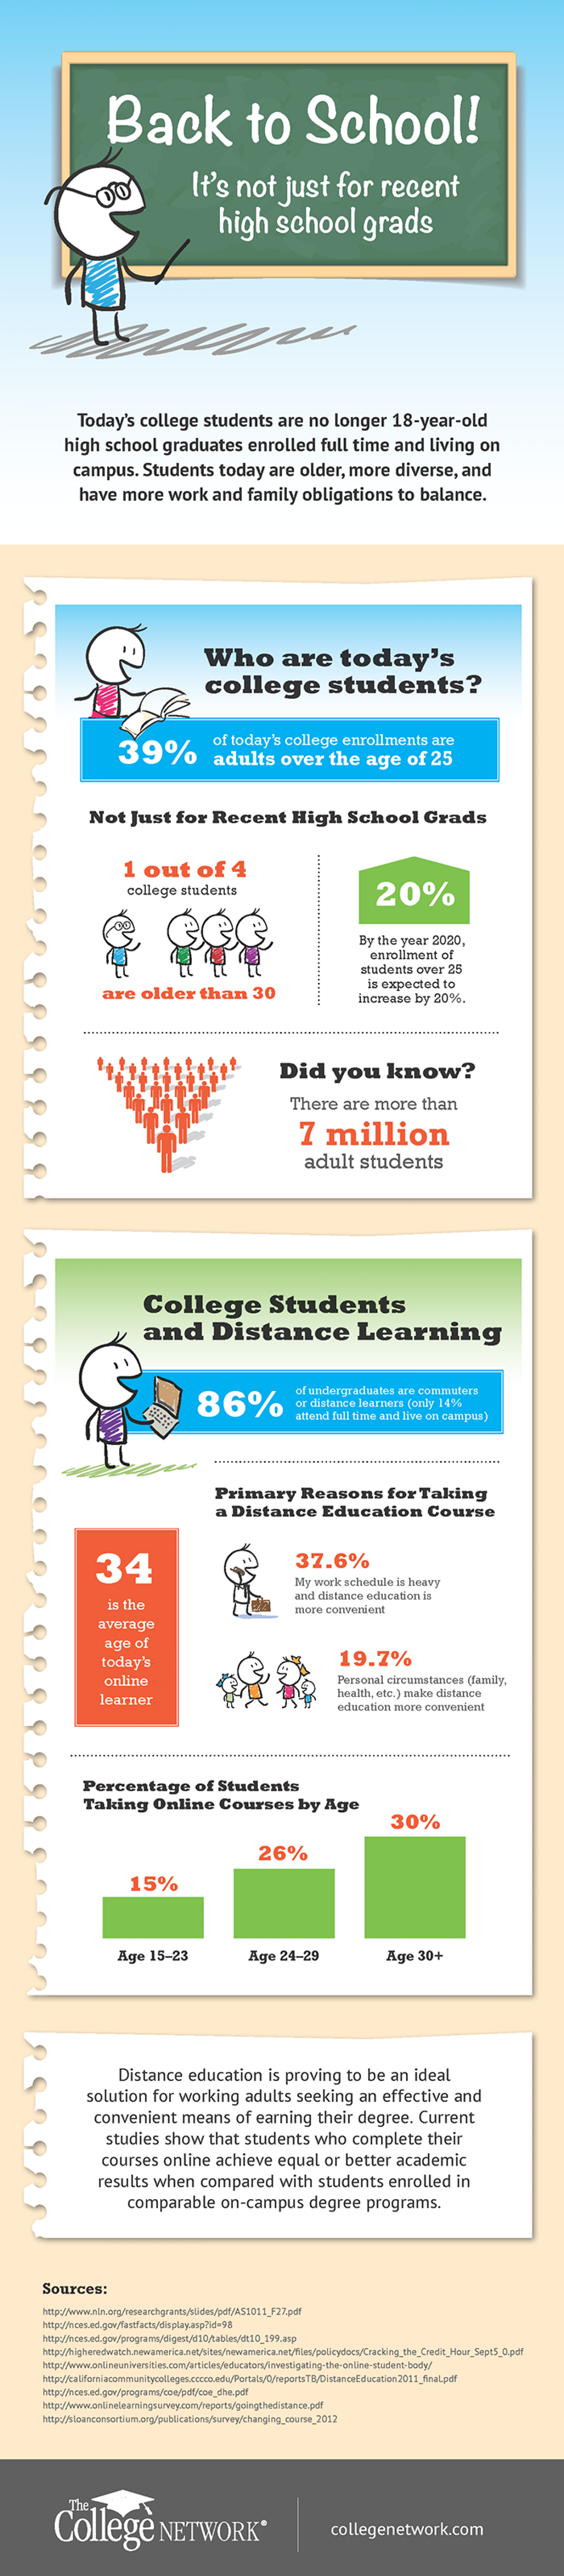 Back to School: Adult Learners and College Enrollment Infographic